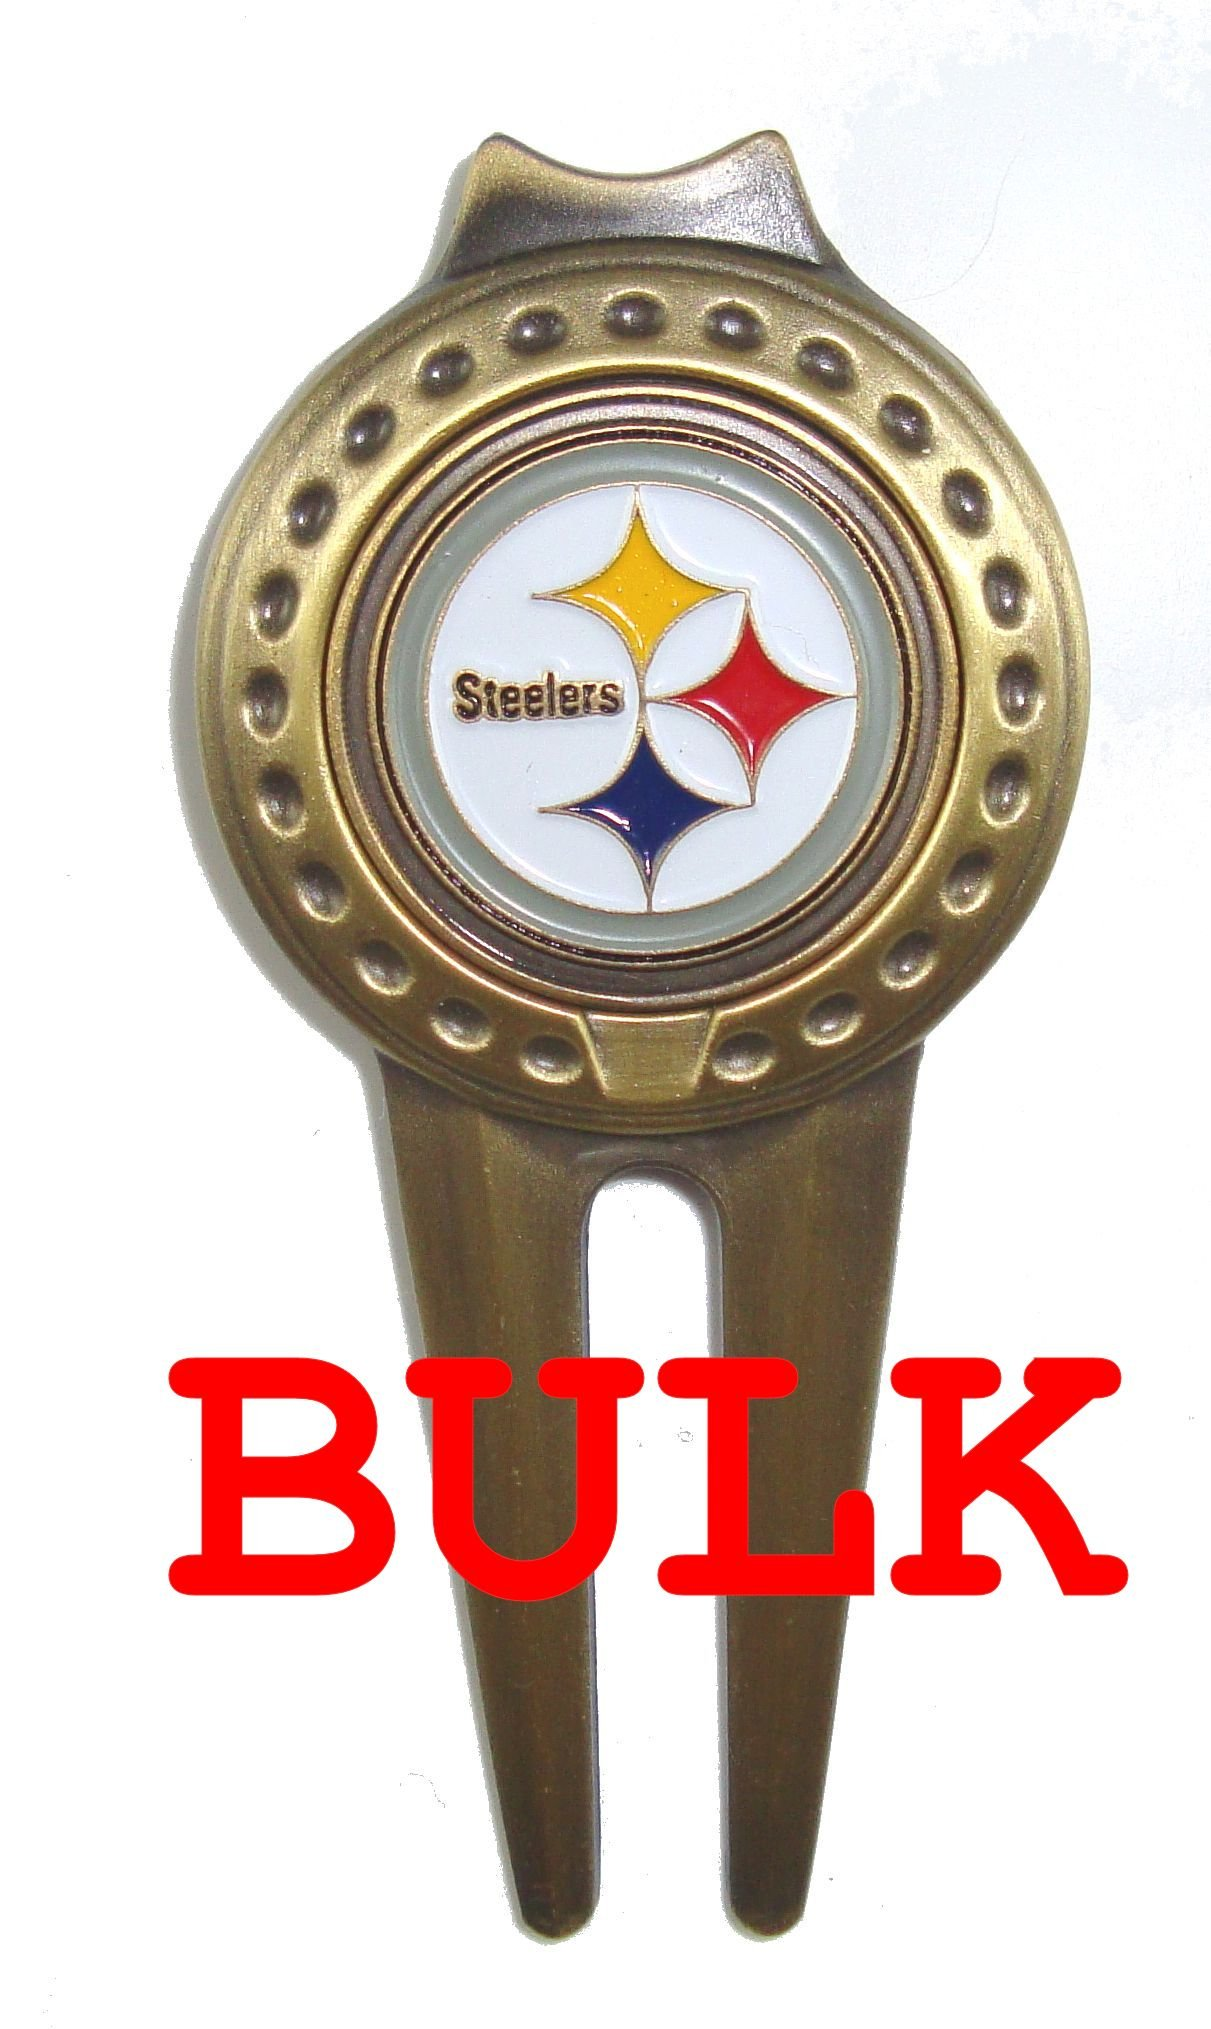 Bulk: 50 Pittsburgh Steelers Divot Tools with Golf Ball Markers